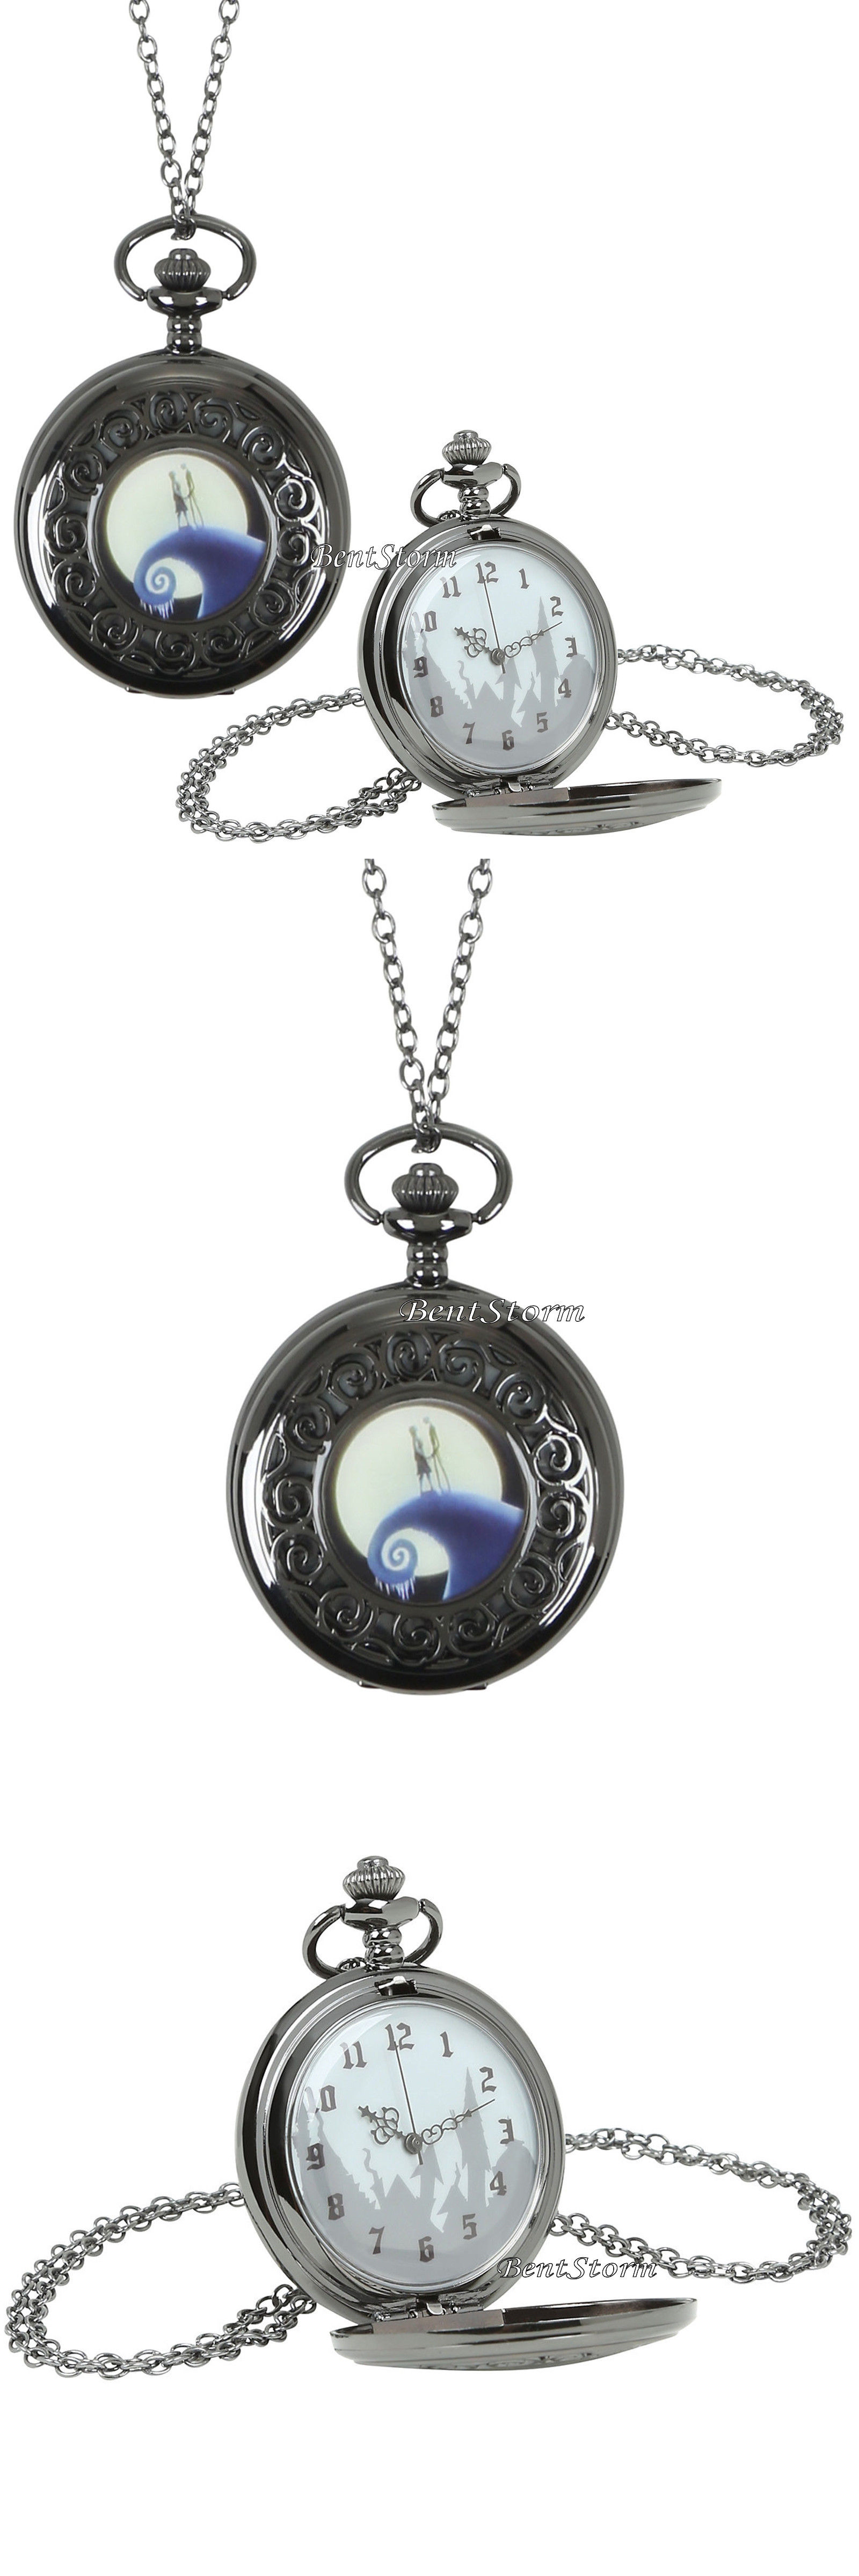 analog in pocket pendant watches item chain women necklace cipher vintage fashion watch falls men kid fob bronze retro new gift gravity bill quartz